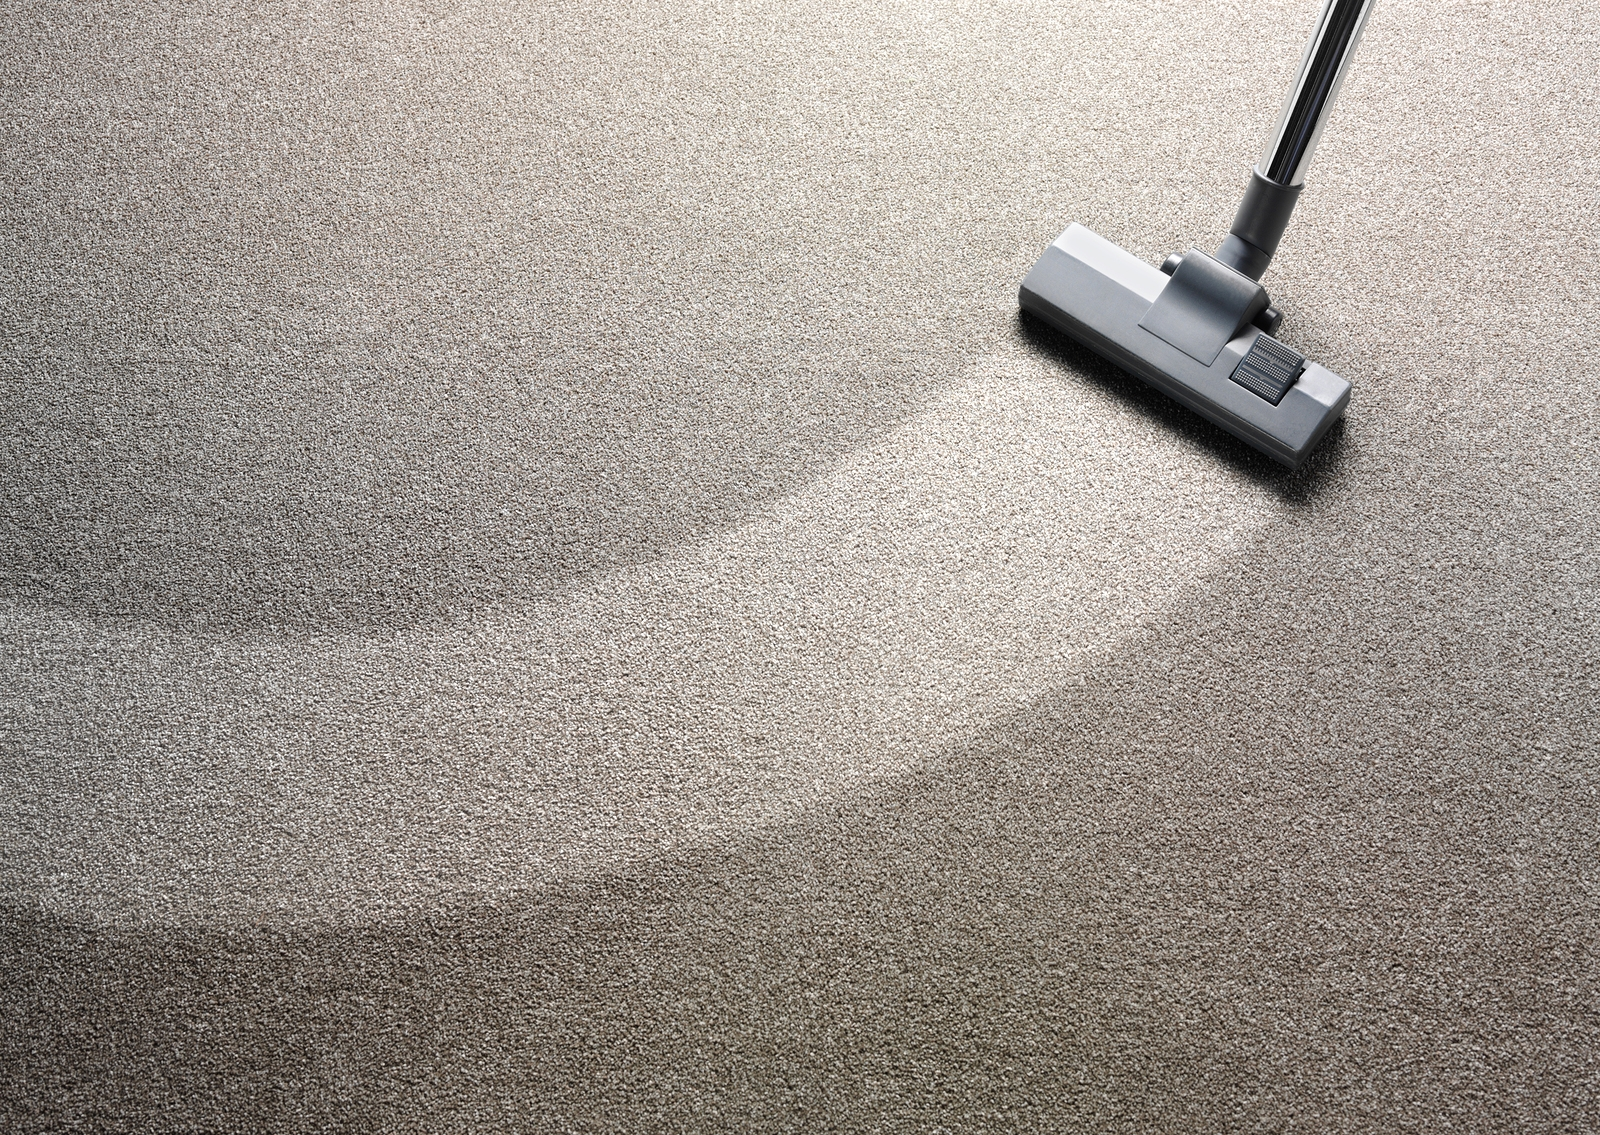 bigstock-Vacuum-Cleaner-on-a-Carpet-76438247